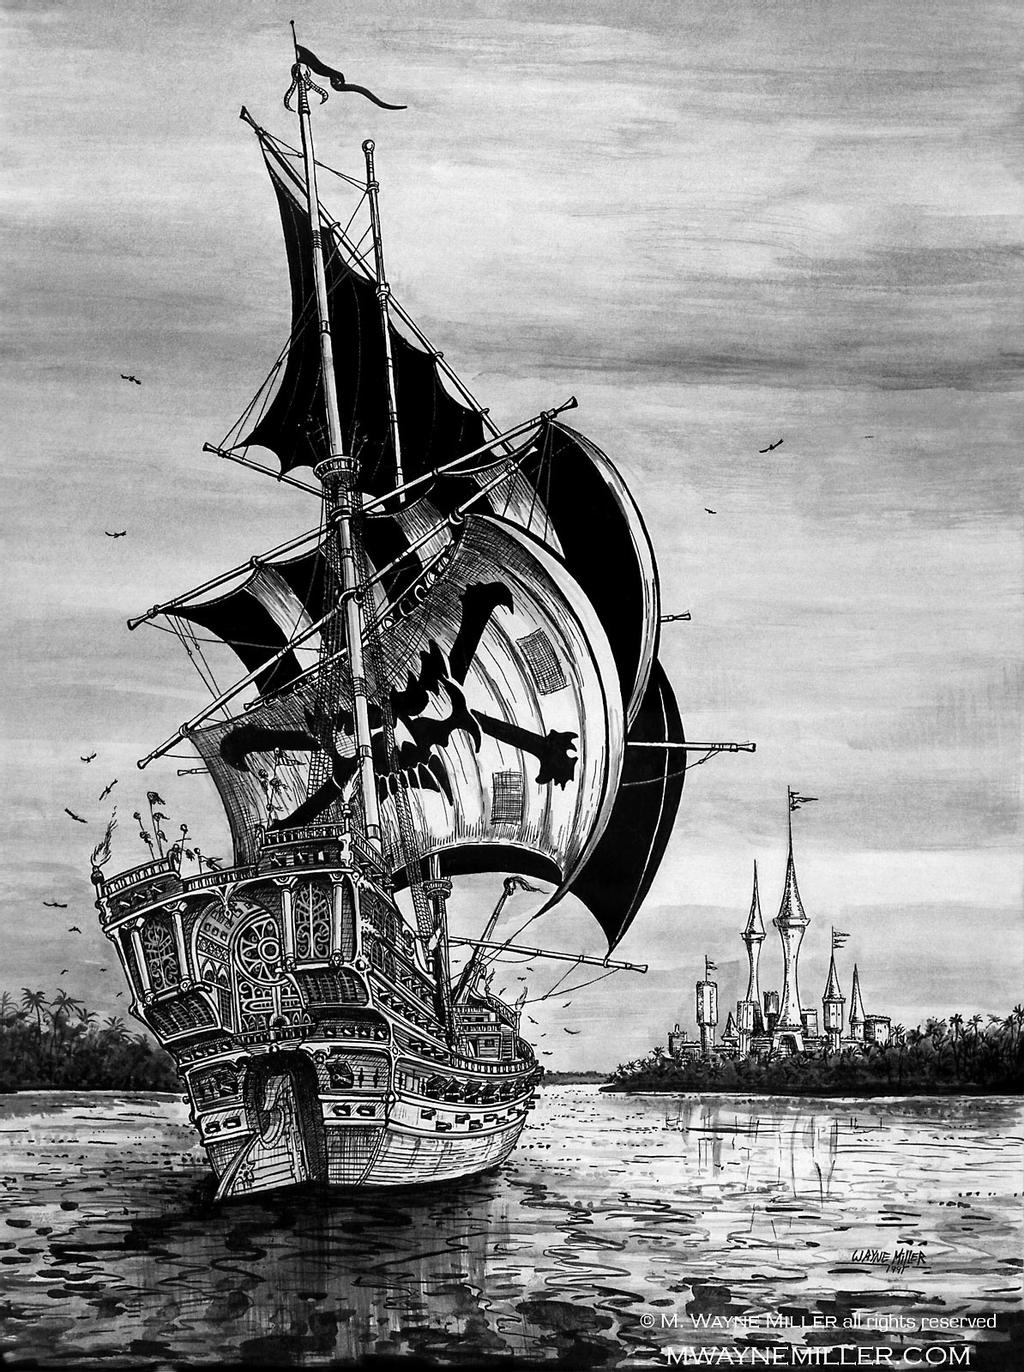 old pirate ship drawing galleon 15th century ship used by pirates old drawing ship old pirate